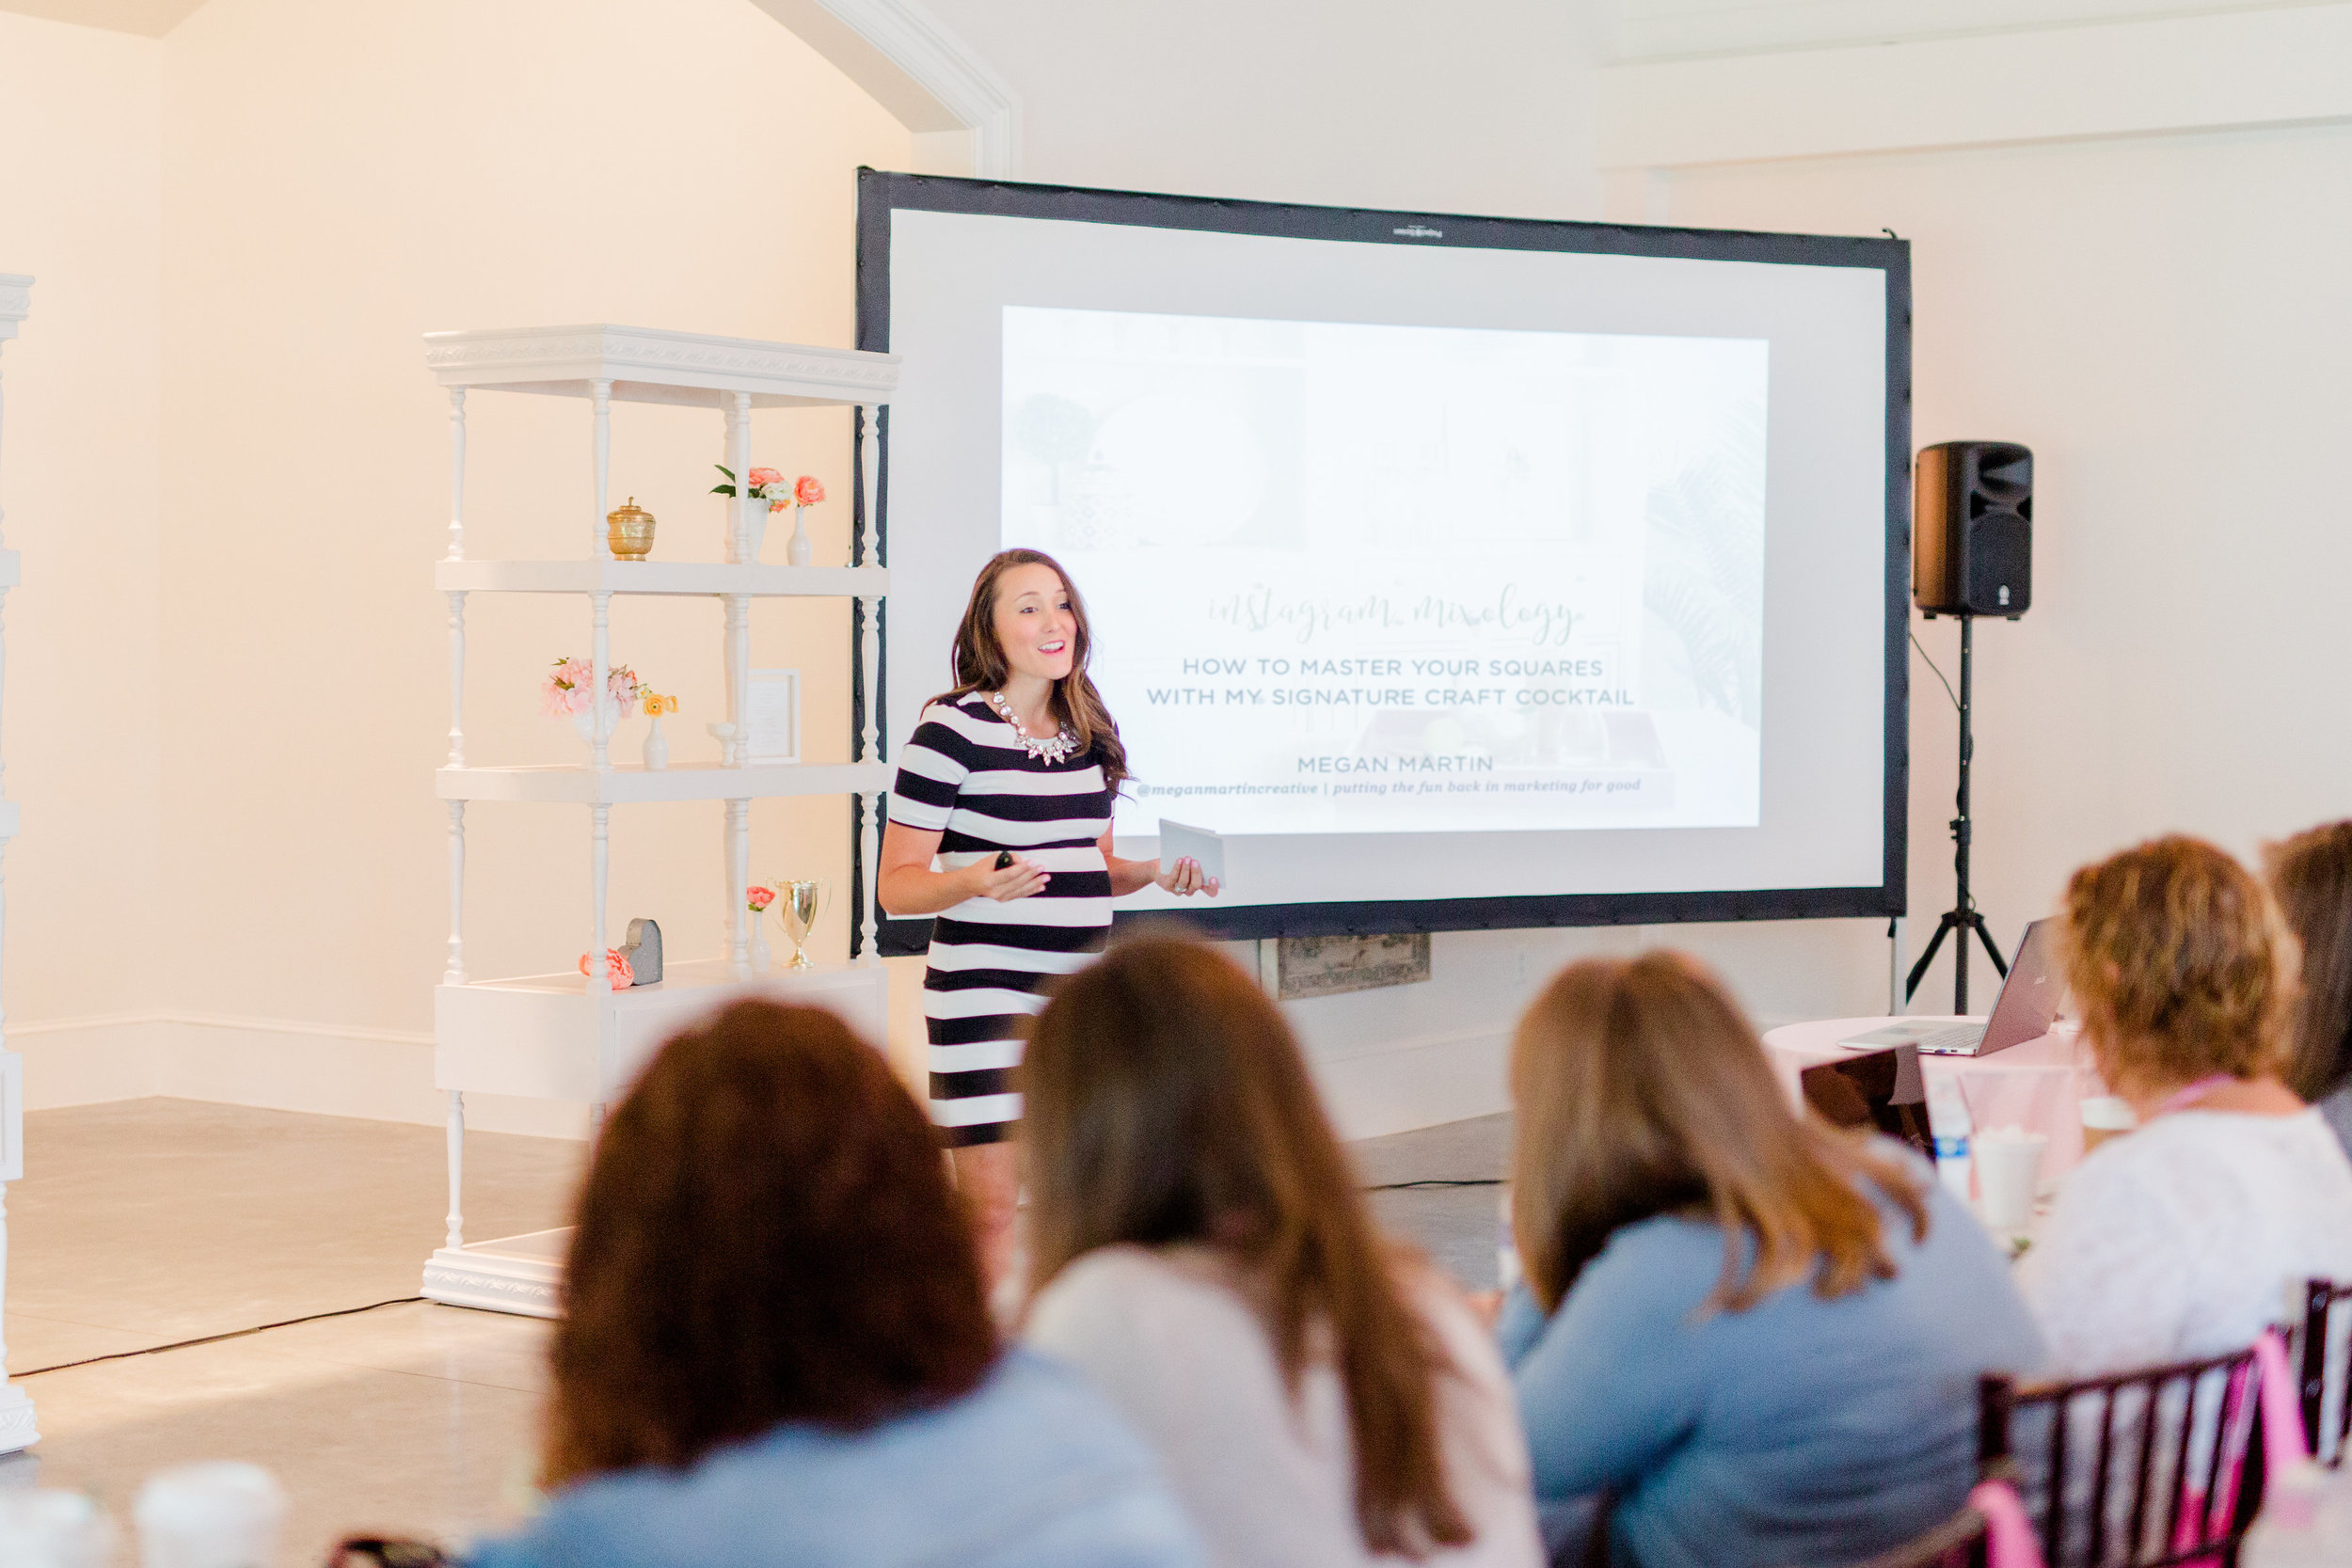 Merrimon-Wynne-Creative-At-Heart-Conference-Raleigh-North-Carolina-Holly-Felts-Photography-84.jpg